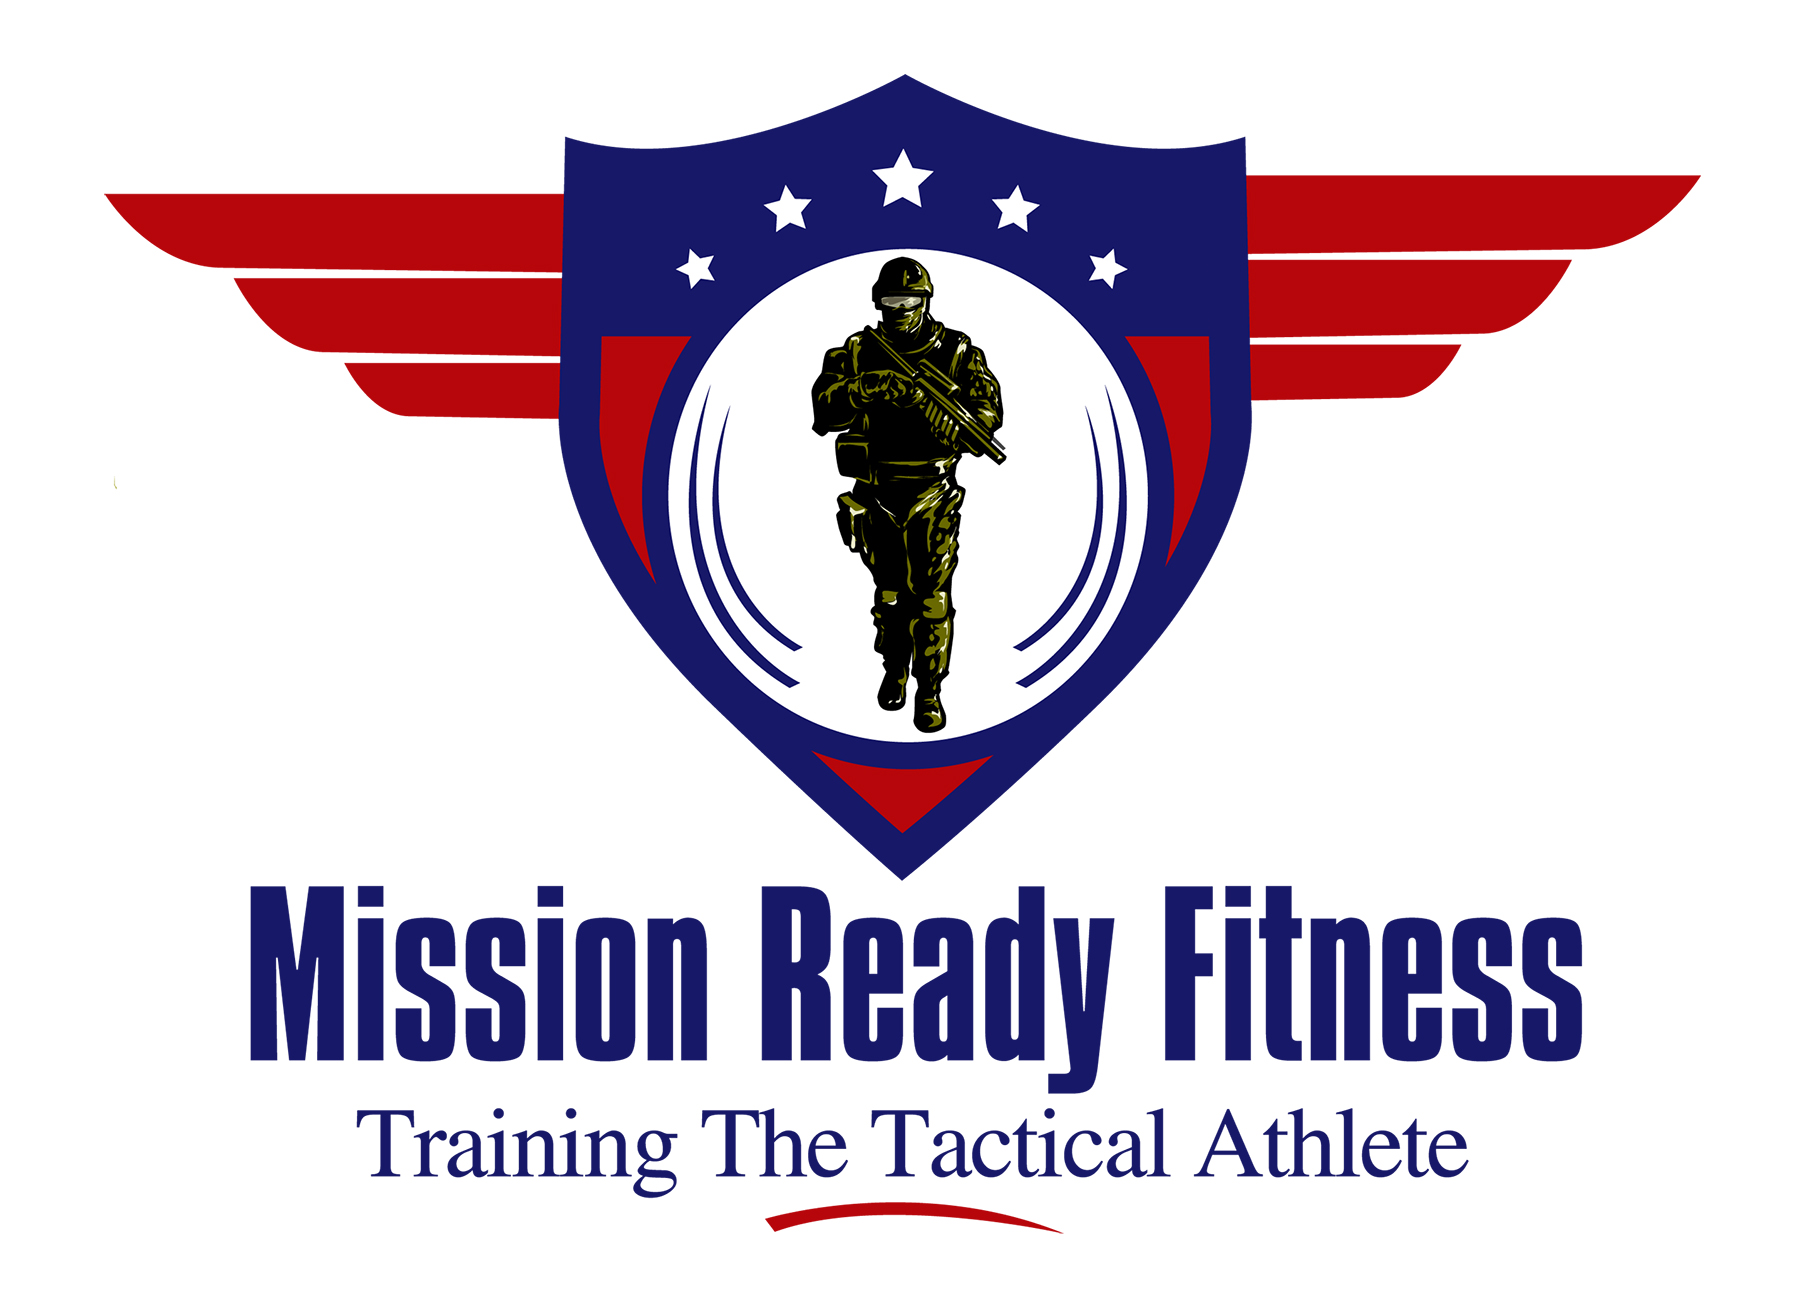 Mission Ready Fitness